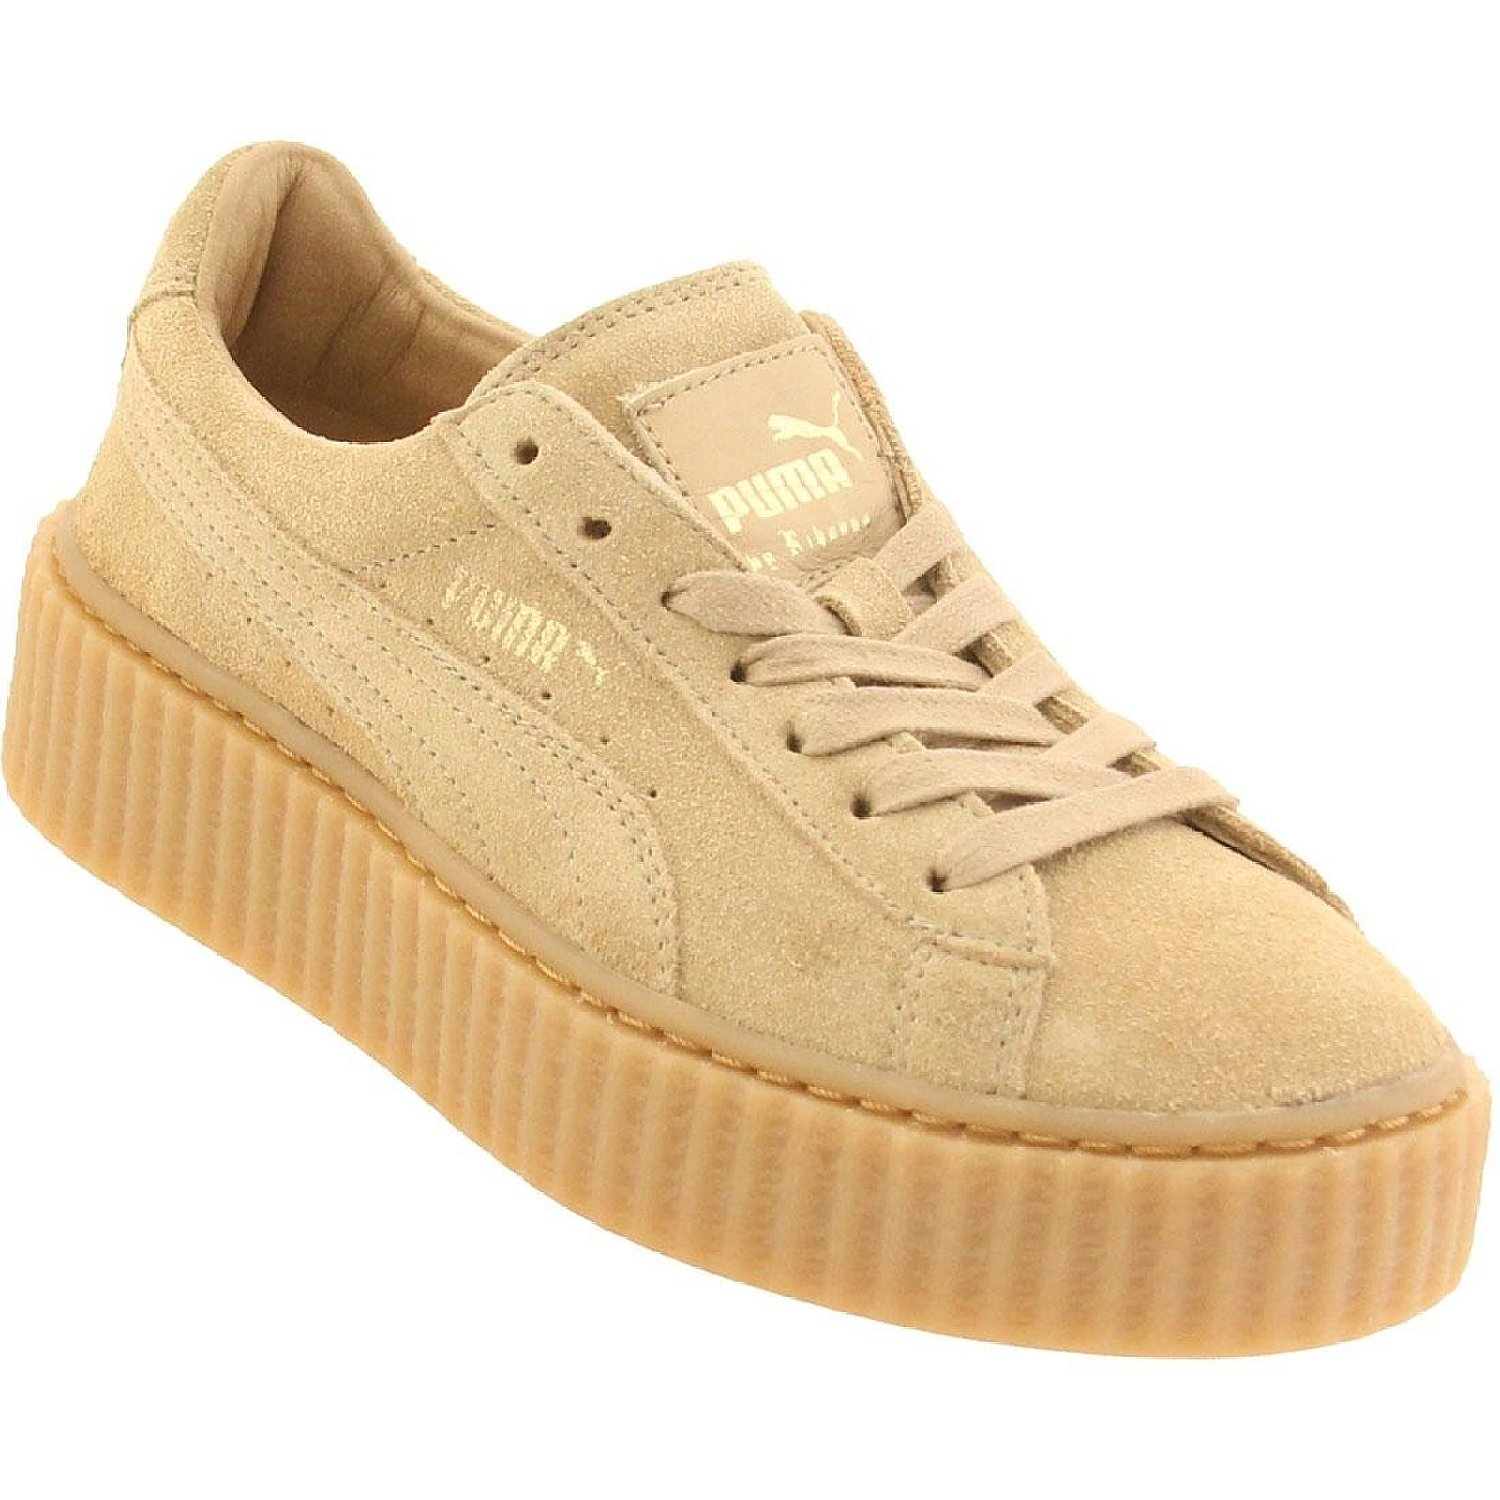 Puma Suede Shoes Amazon